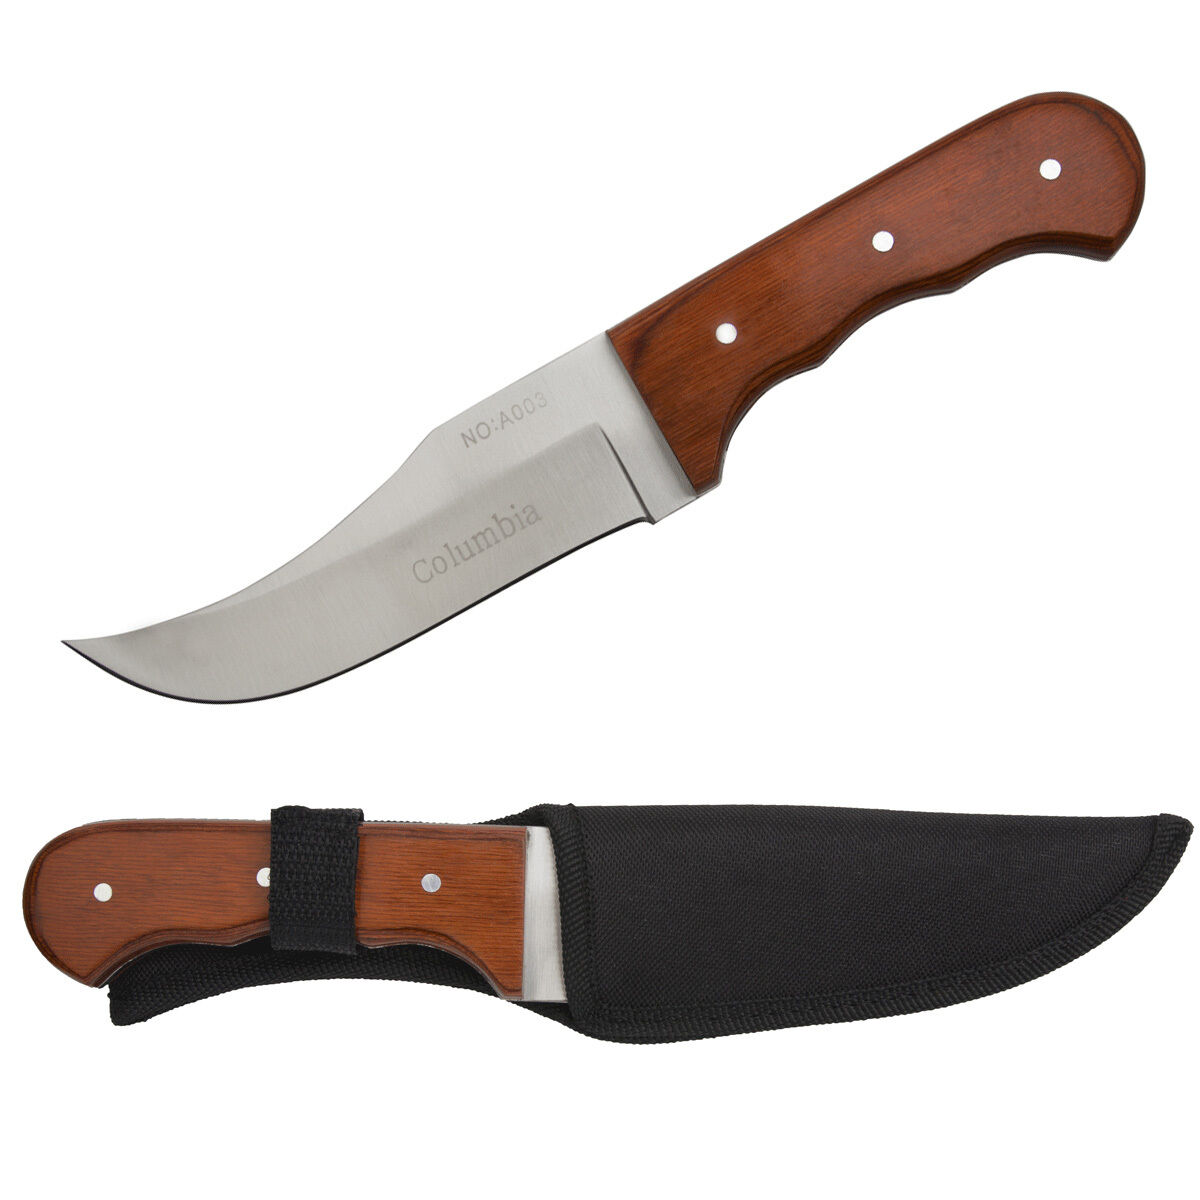 columbia jagdmesser outdoor edelstahl rostfrei bowie messer camping angeln knife eur 6 00. Black Bedroom Furniture Sets. Home Design Ideas